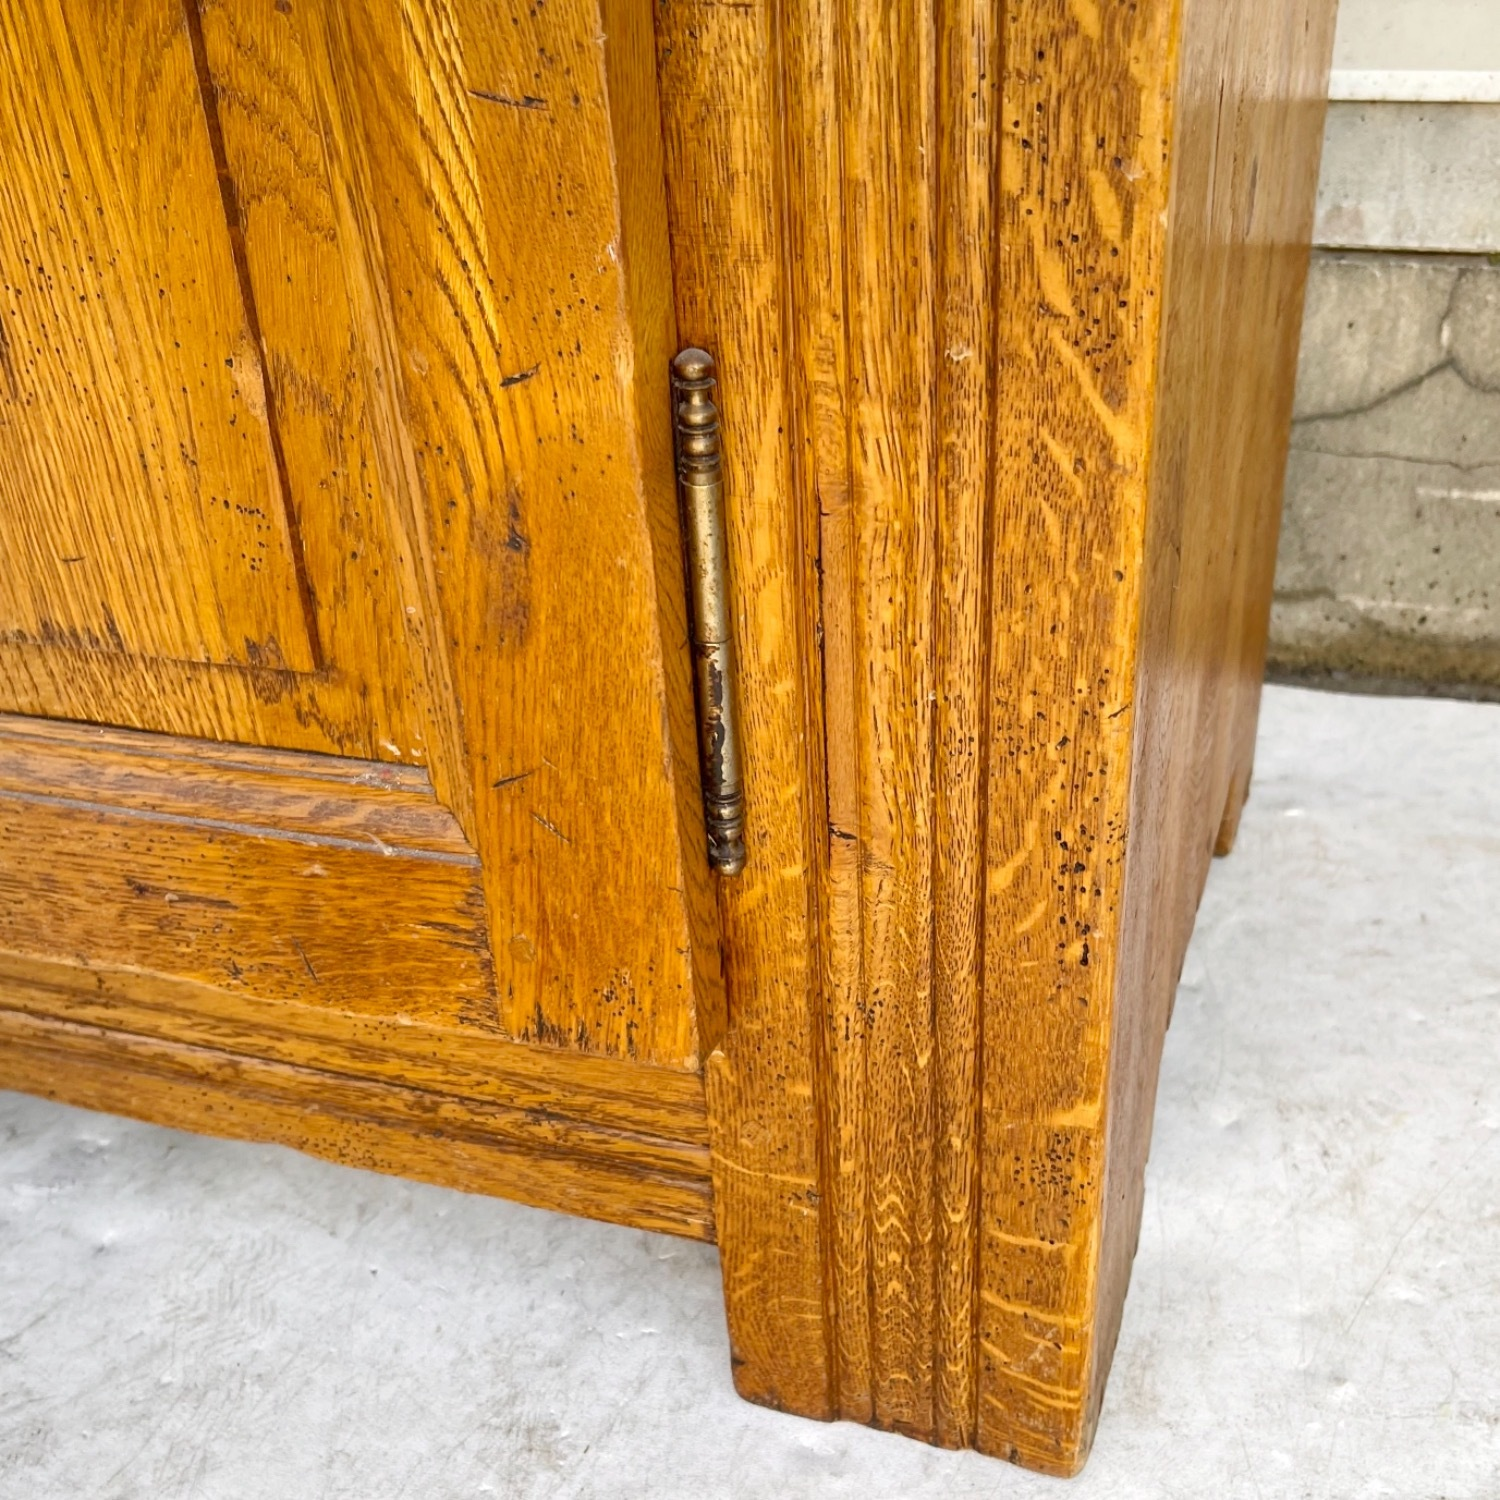 Antique Country Style Cupboard With Topper - image-12